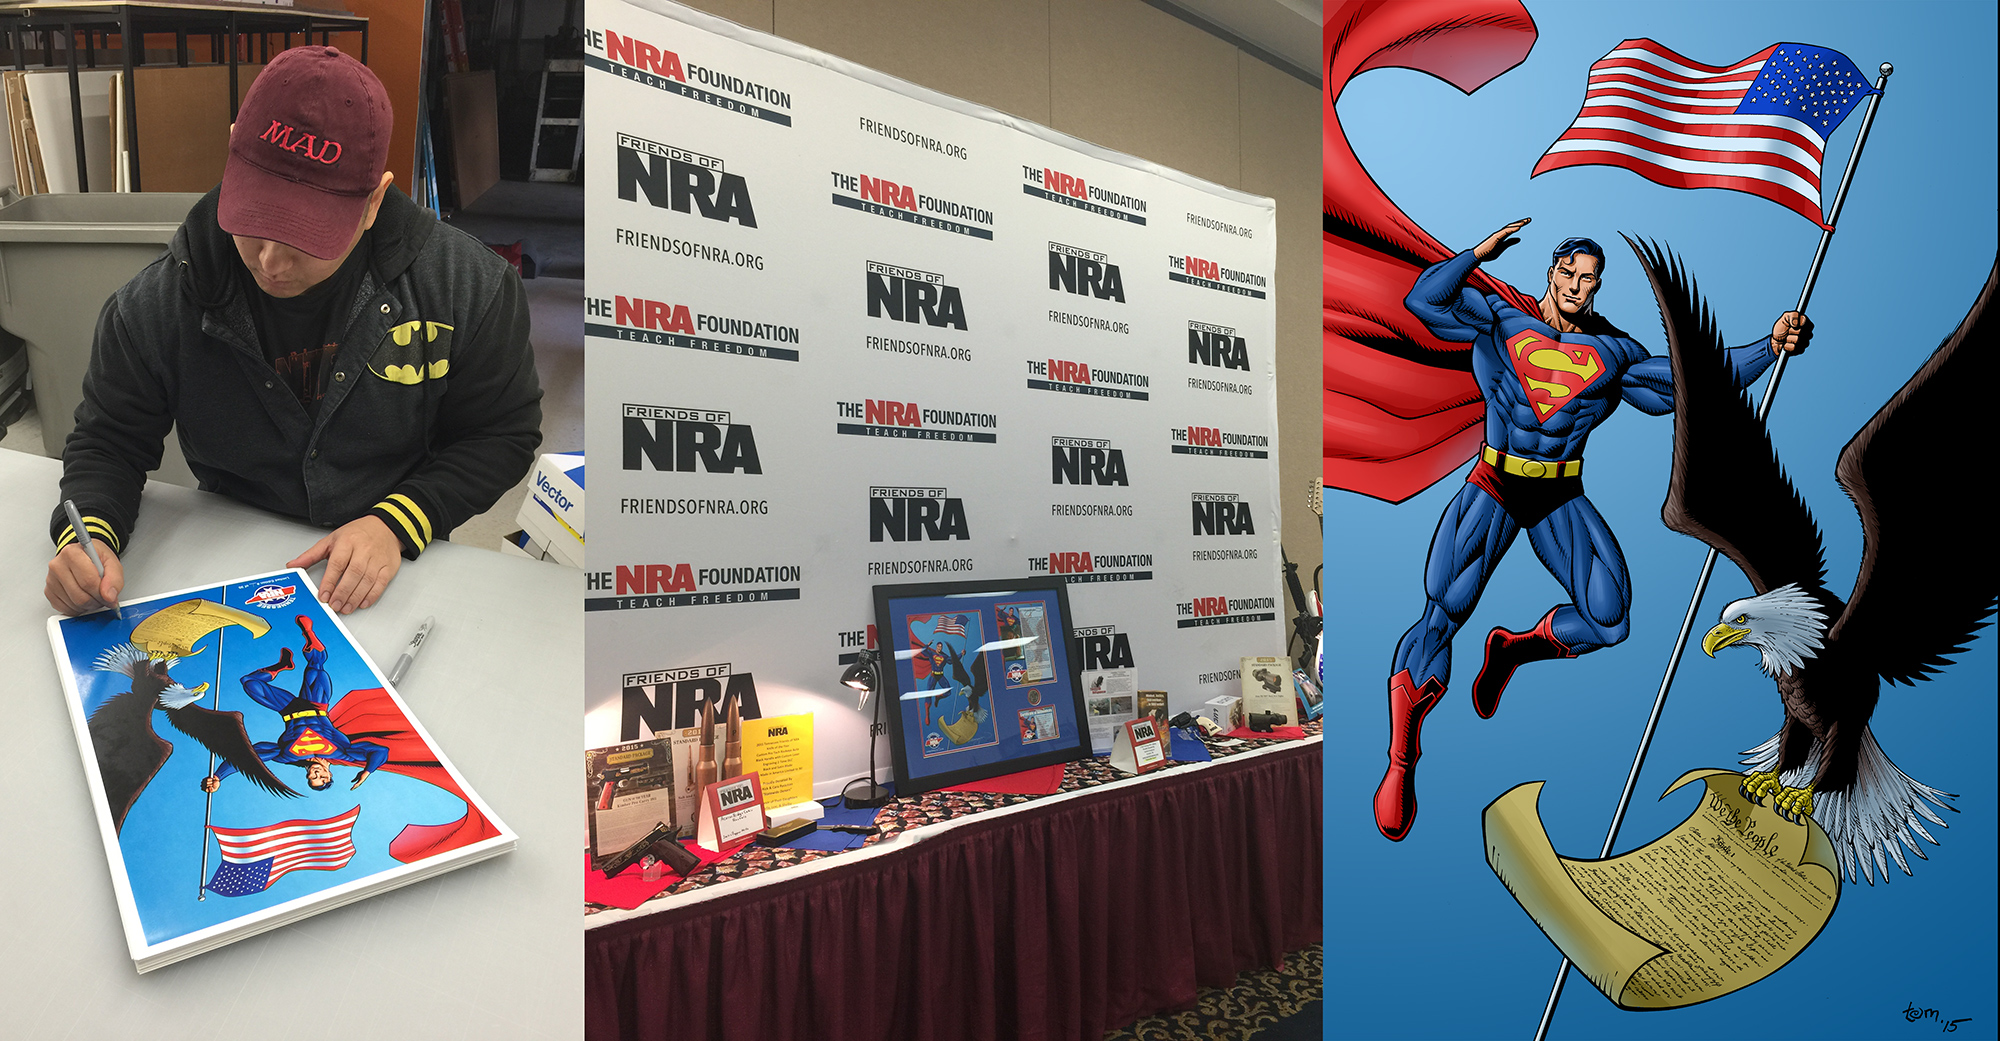 This year I was invited twice to the   Tennessee Friends of NRA   dinner banquet (thanks to Michael Webb and Jim Bruce) to contribute an exclusive  Superman  illustration that was printed in limited numbers to be auctioned off to raise money.  The prints were a huge success this year, raising around  $15,000 .  See a larger version   here .